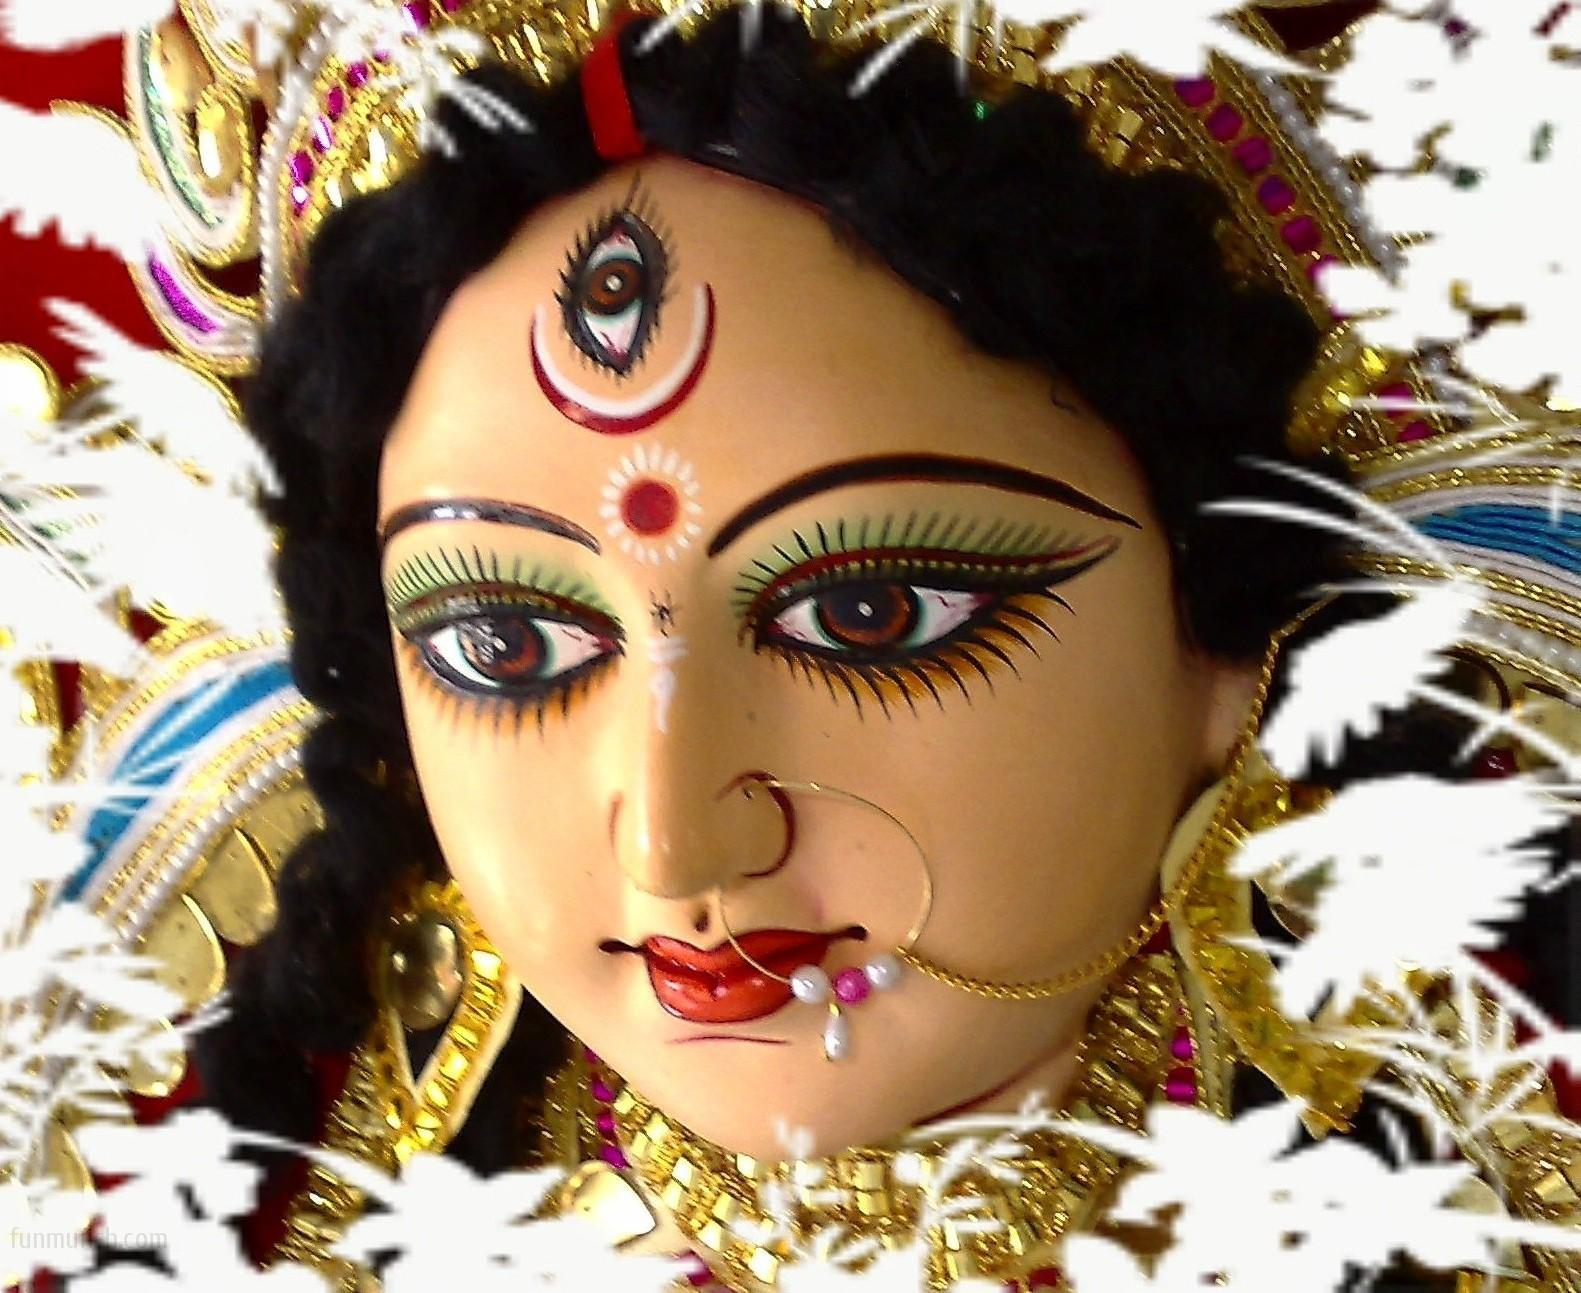 Maha Ashtami Mahagauri face photos